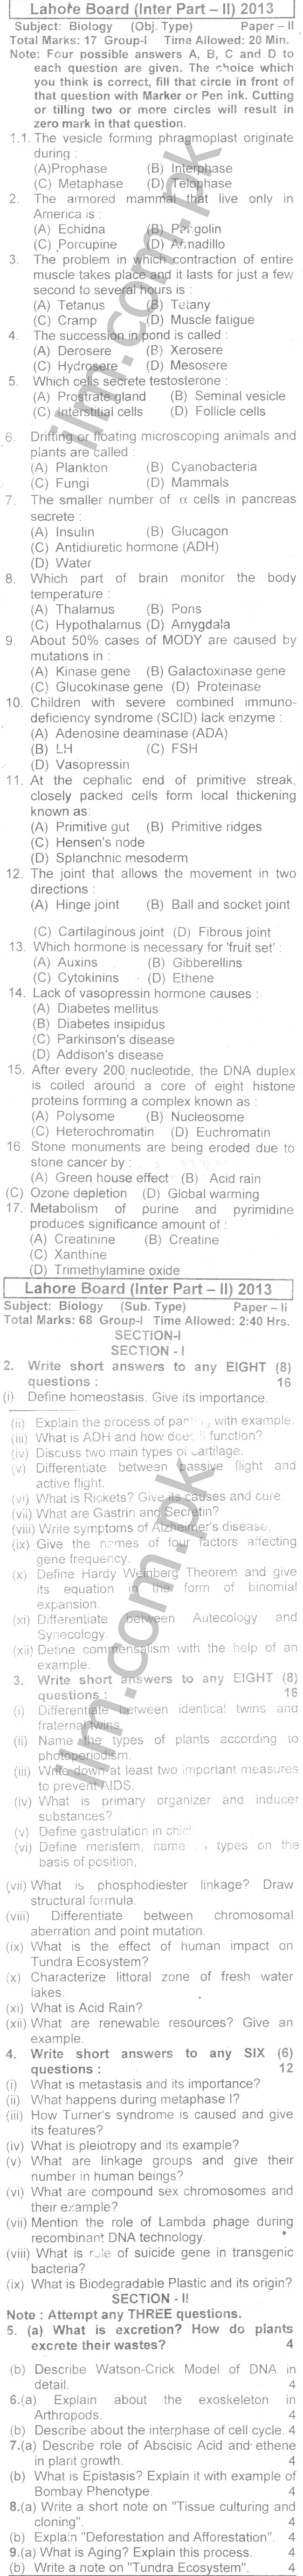 Lahore Board Inter Part 2 Biology Past Papers 2013